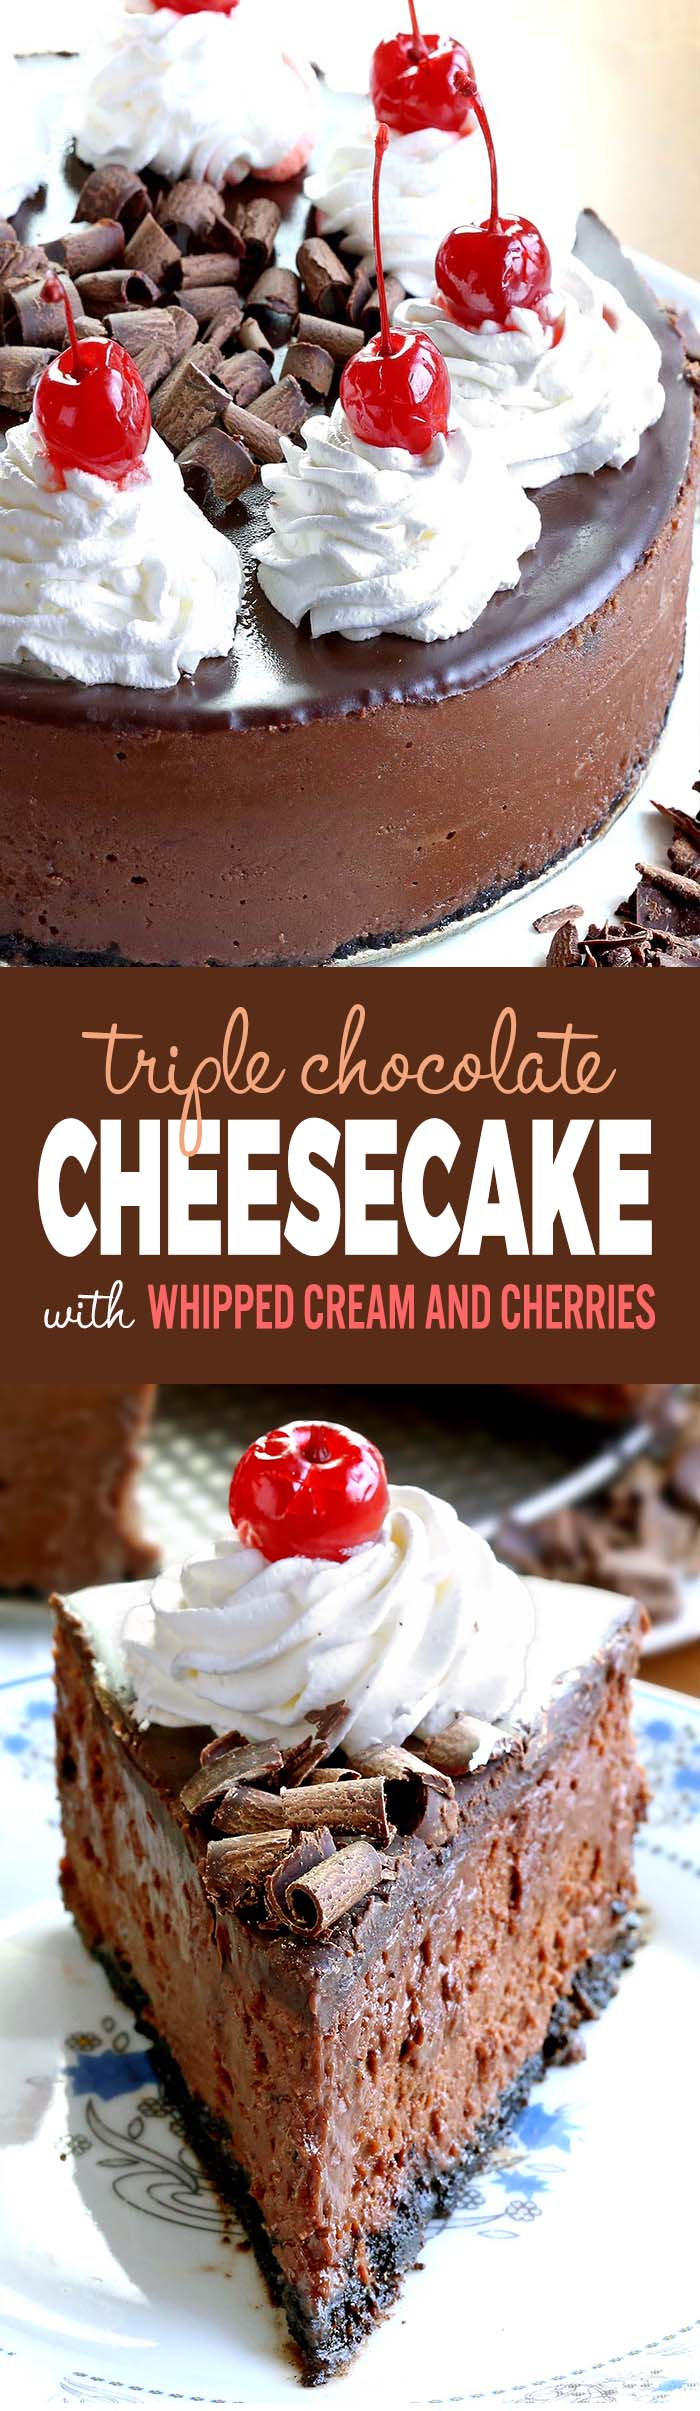 Smooth, rich, decadent, chocolatey CHOCOLATE! Triple Chocolate Cheesecake with whipped cream and cherries, is simply a dream come true for any chocolate lover….like me!